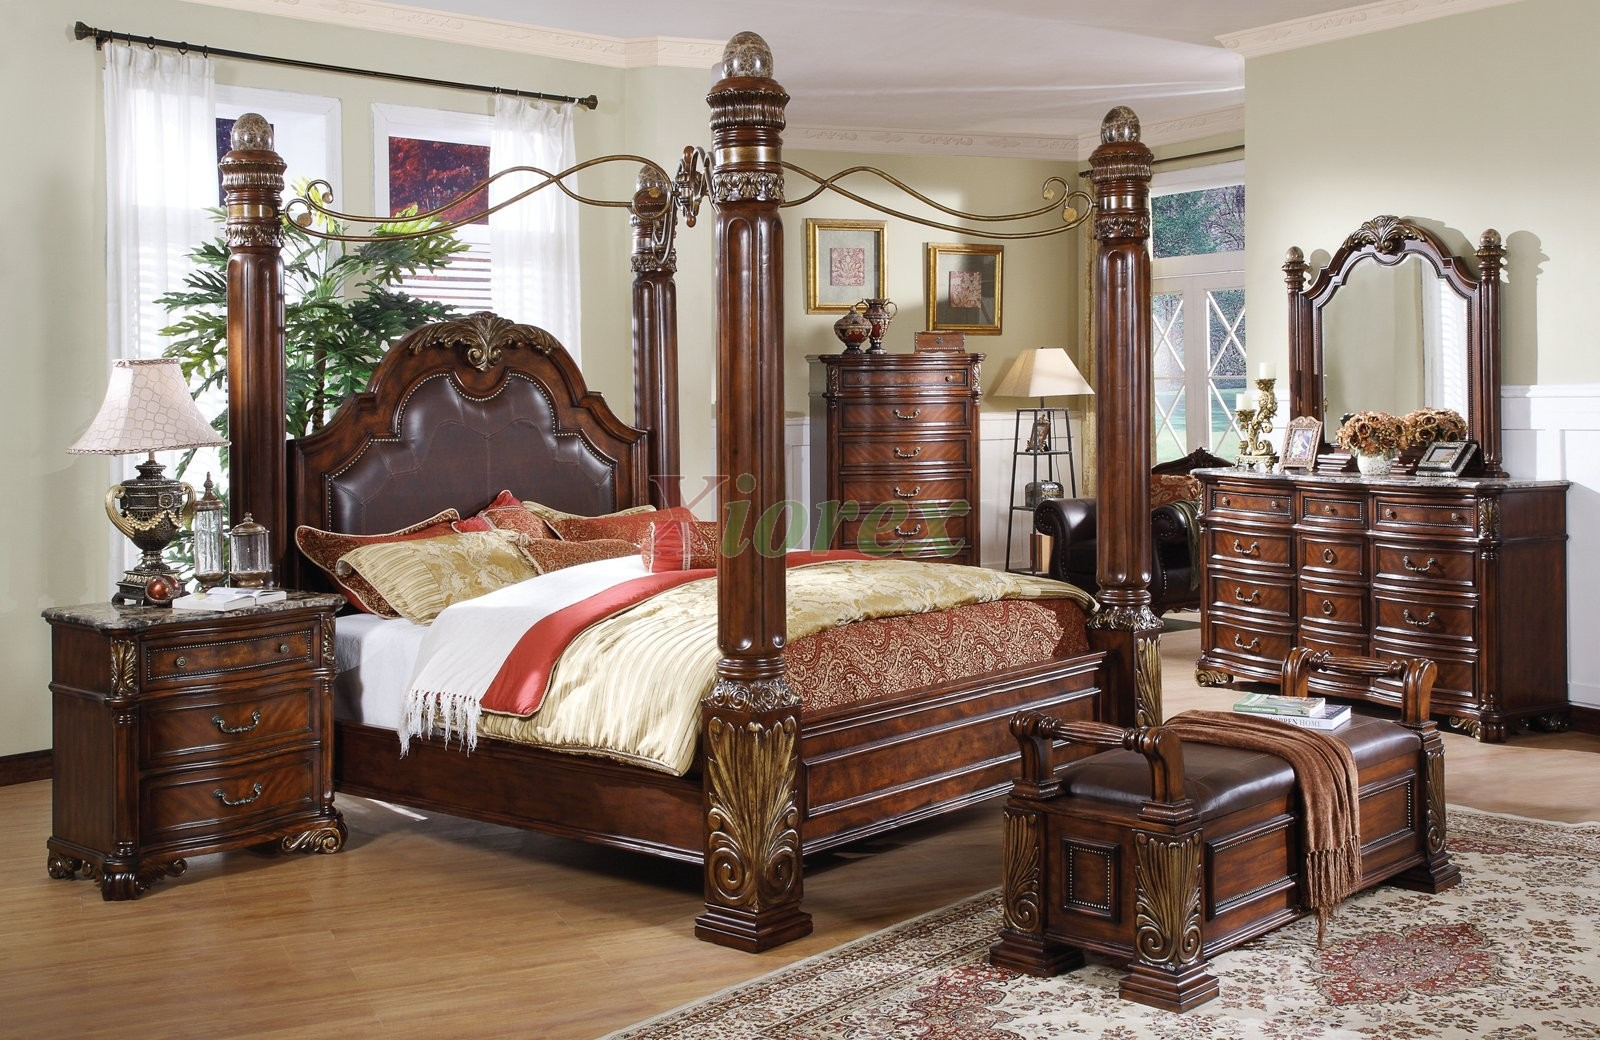 Canopy bed sets bedroom furniture sets w poster canopy for Furniture bedroom sets